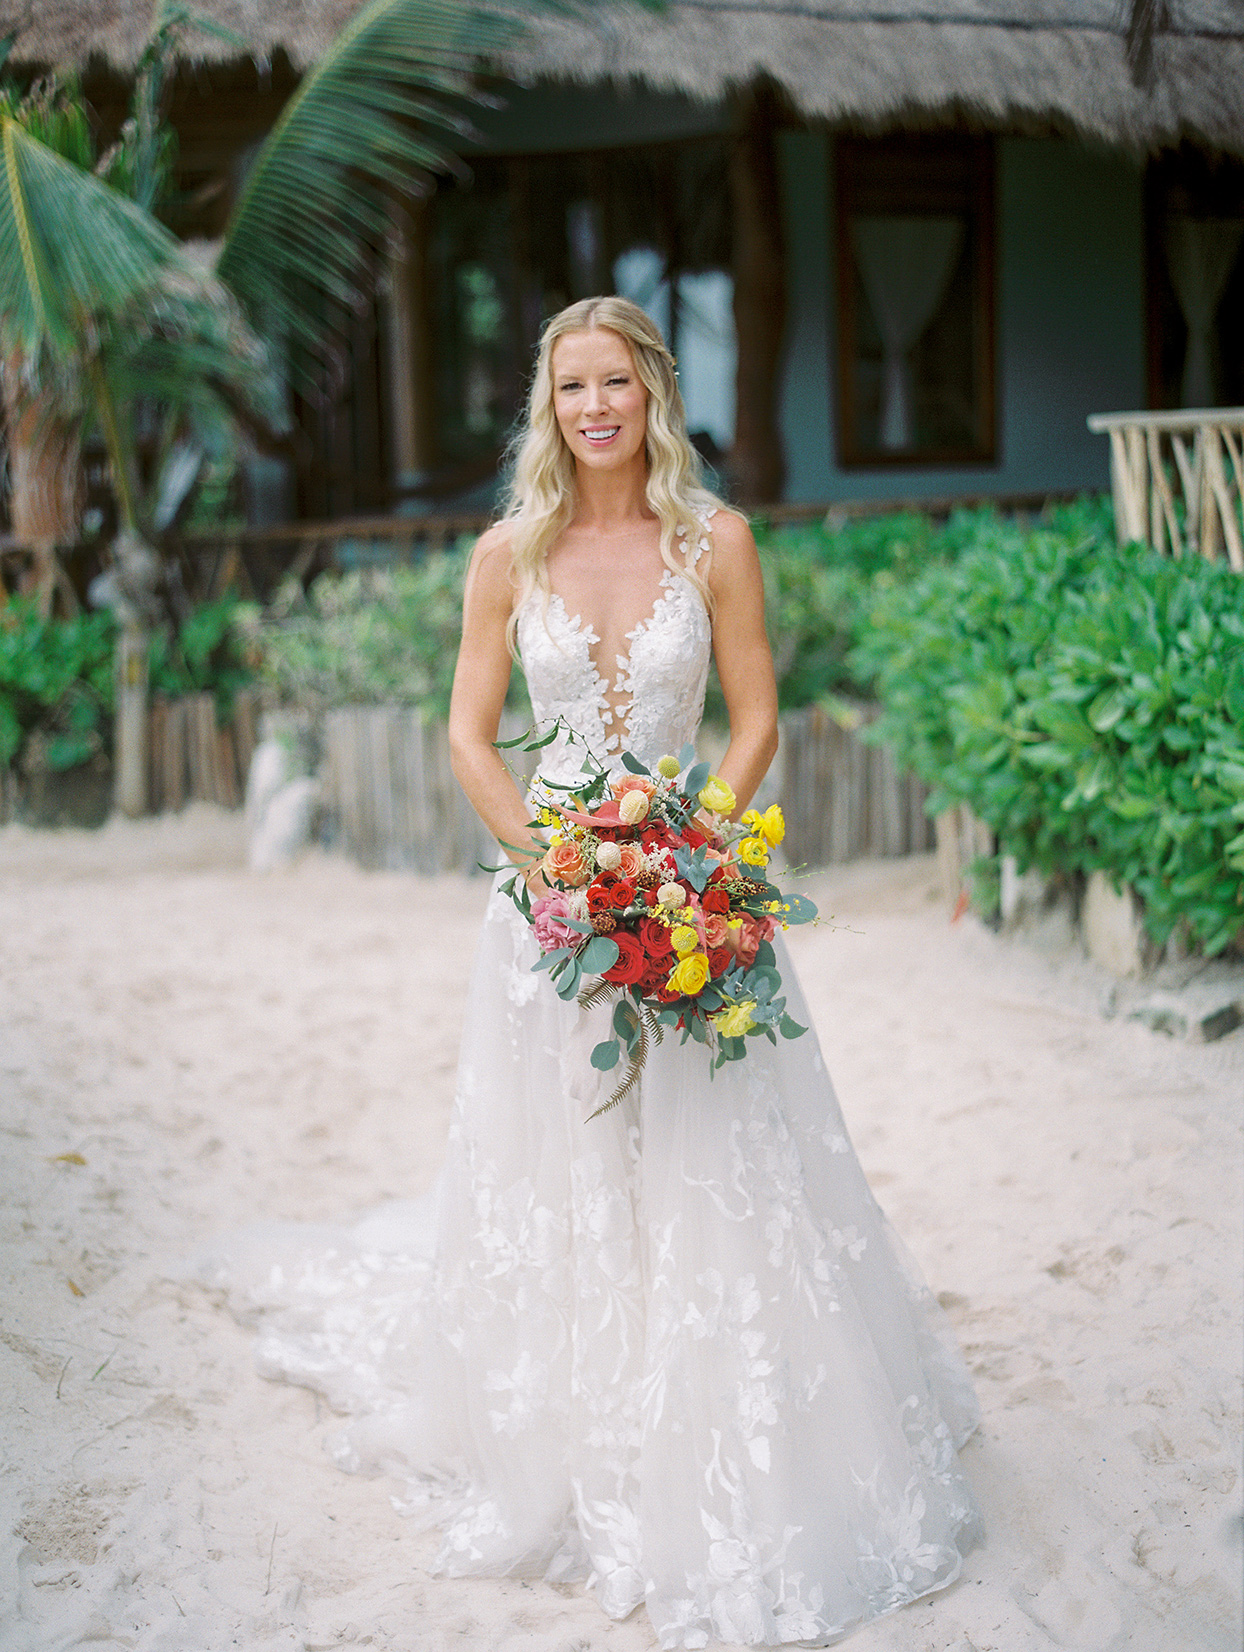 bride in sheer overlay white dress holding yellow and red wedding bouquet